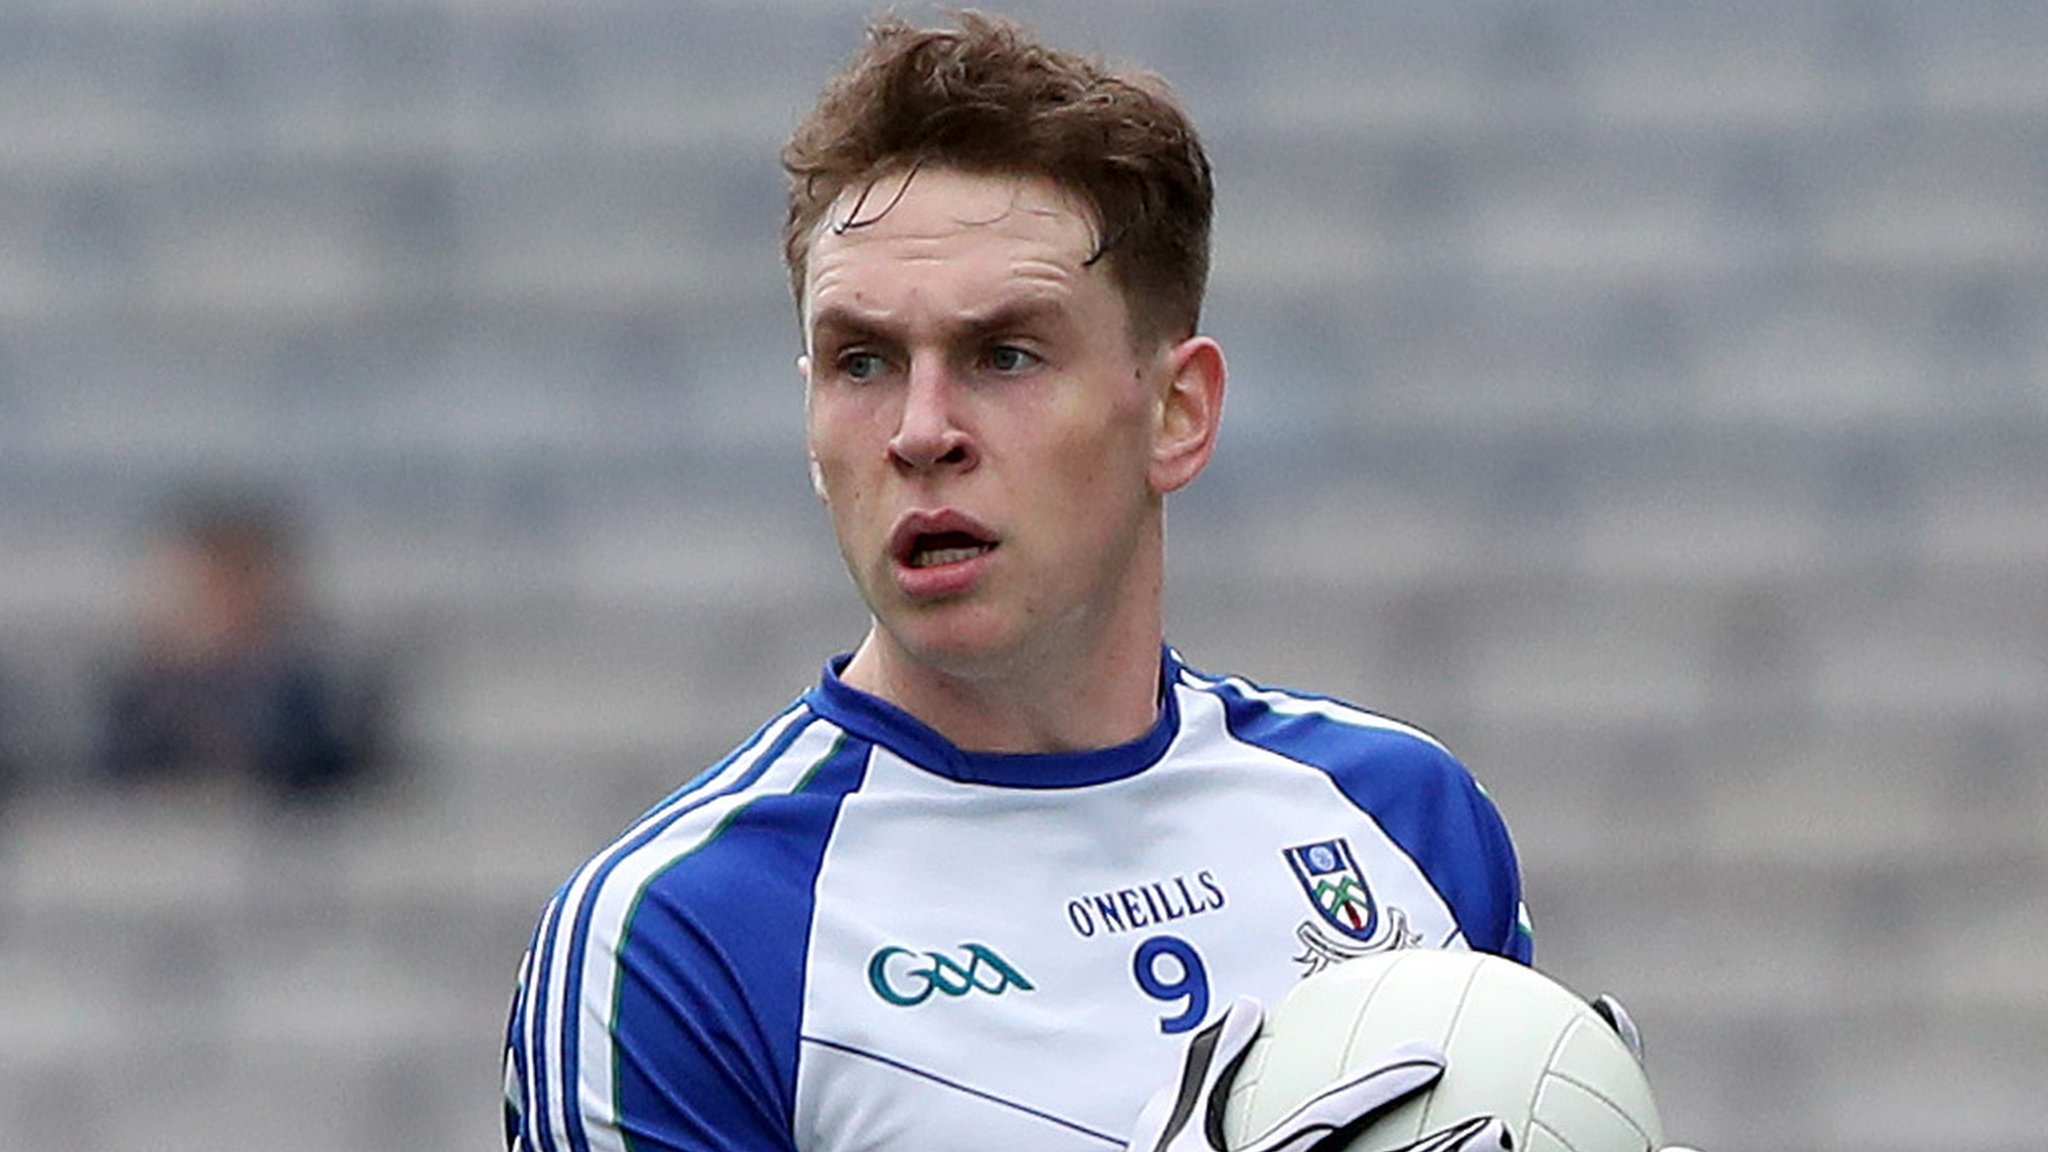 Ulster SFC: Kearns to make Monaghan debut with Cavanagh fit for Tyrone